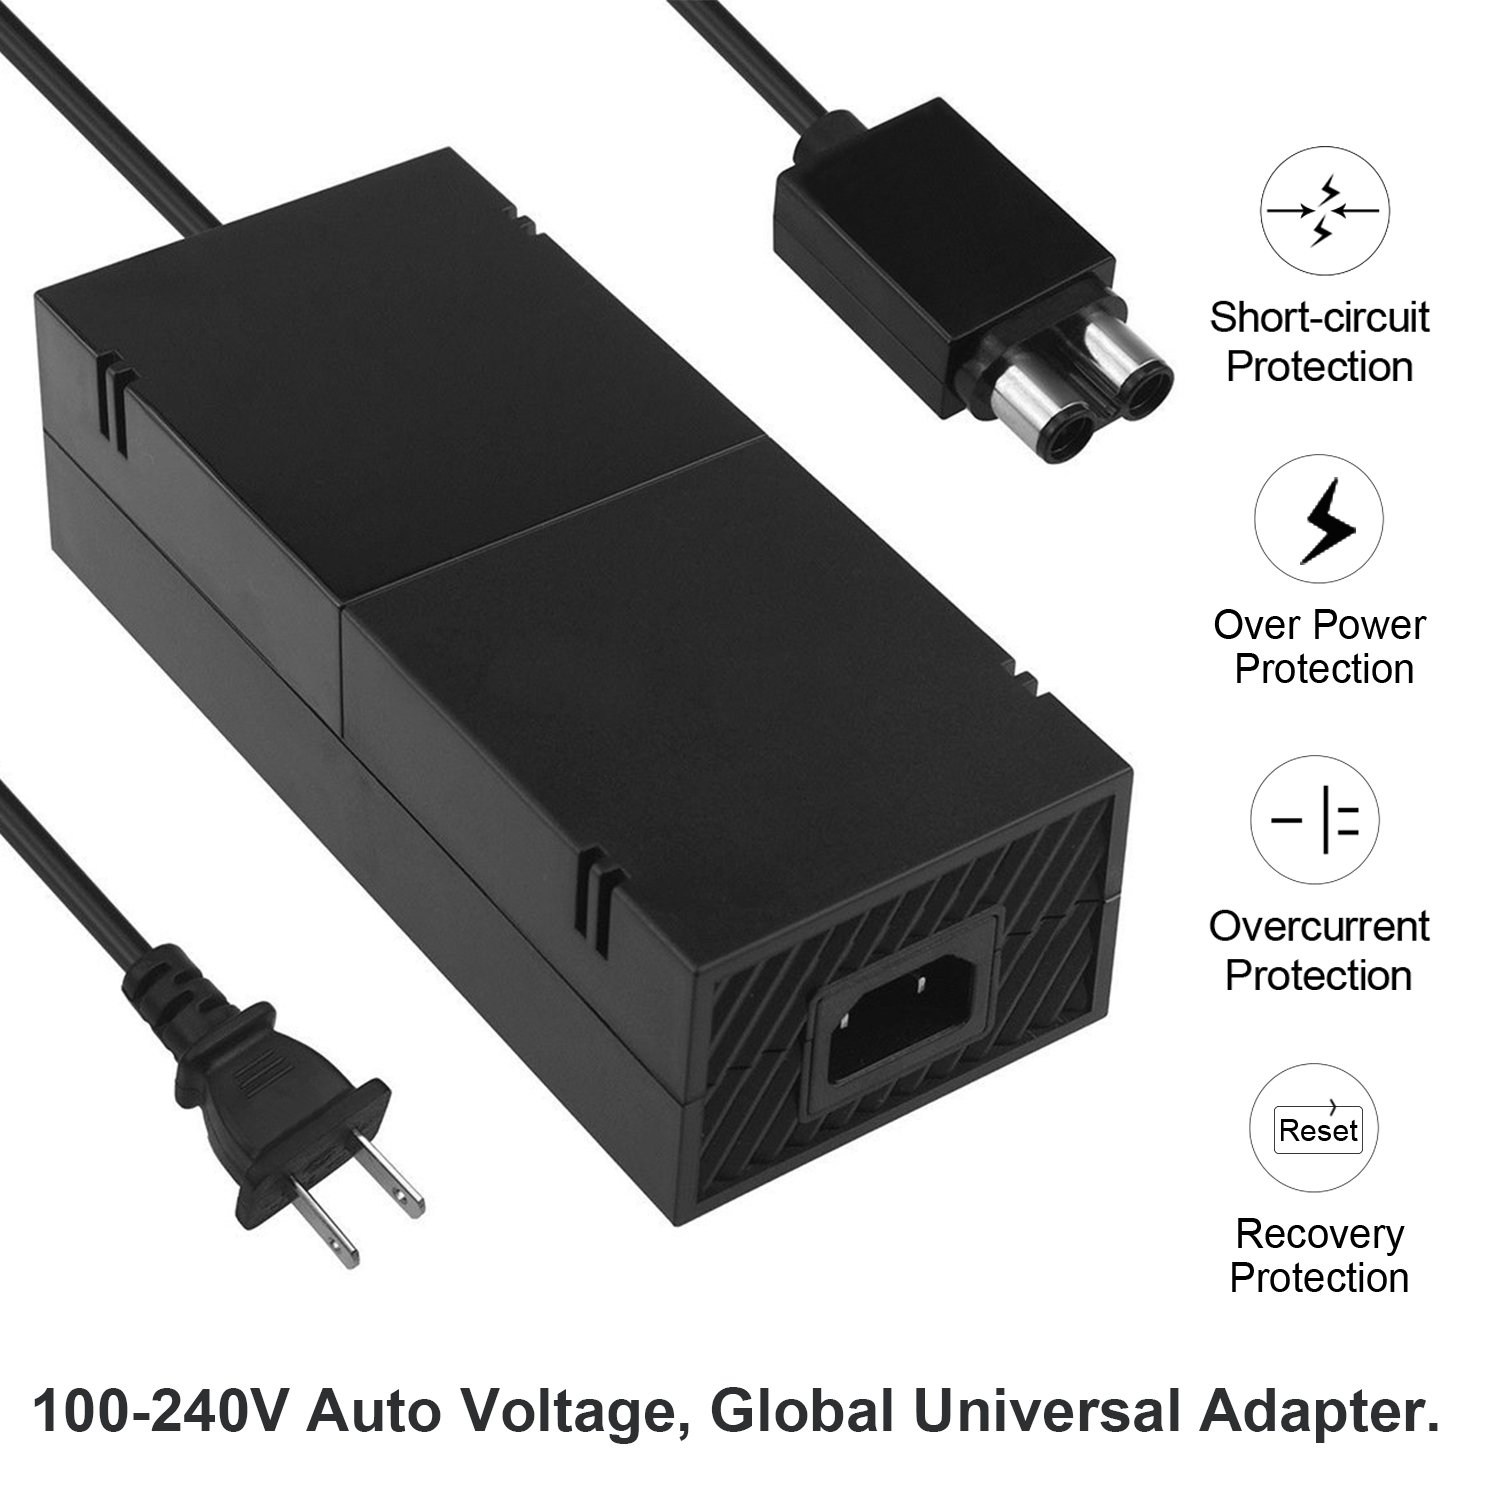 Xbox One Power Supply Brick Cord Yteam Ac Adapter Laptop Circuit A Typical For Great Charger Charging Accessory Kit With Cable